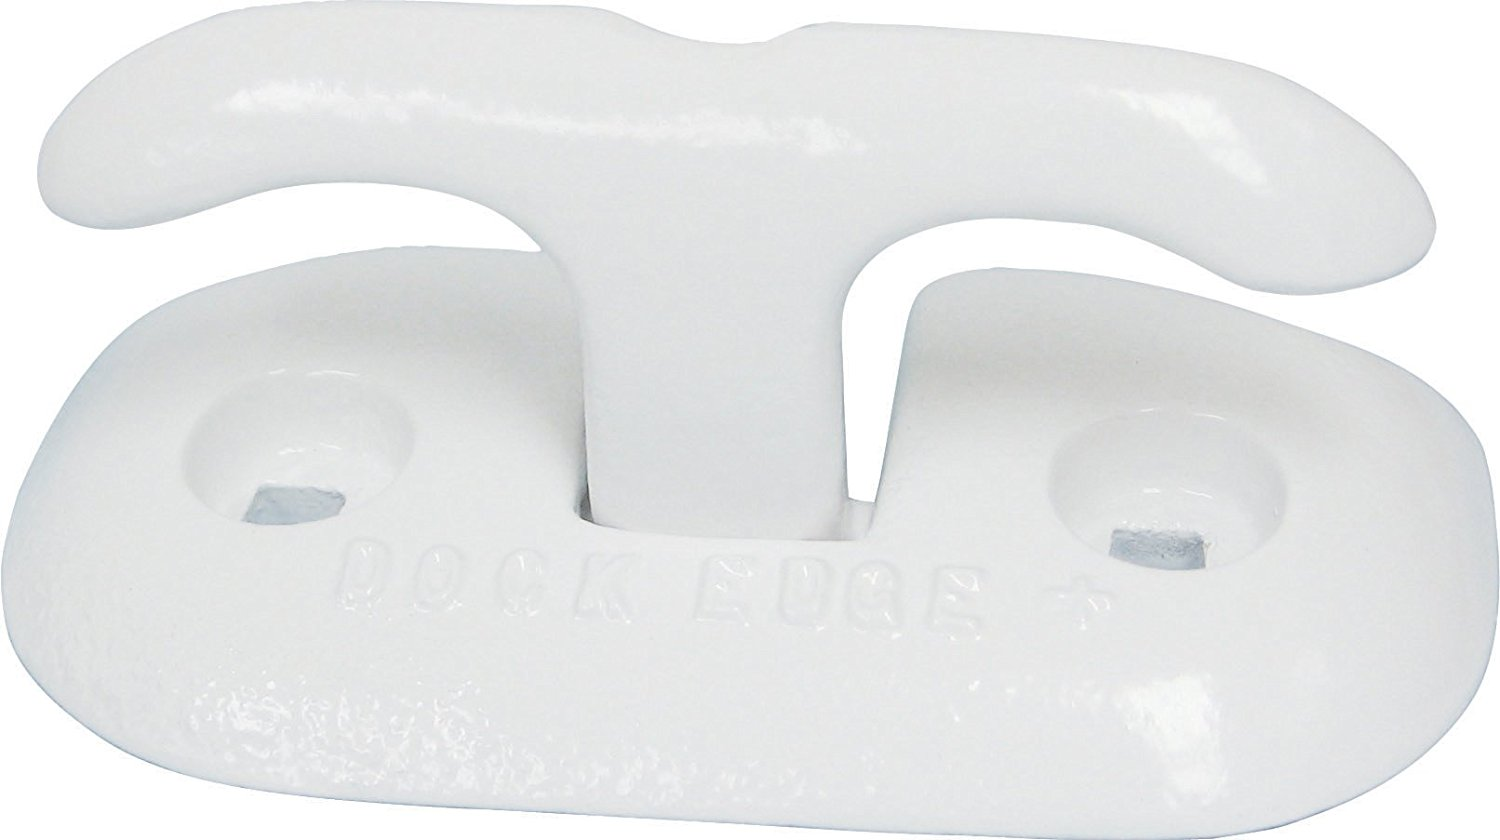 + AlMag 35 Flip-Up Dock Cleat, 6-Inch, White, Ship from USA, Brand Dock Edge by